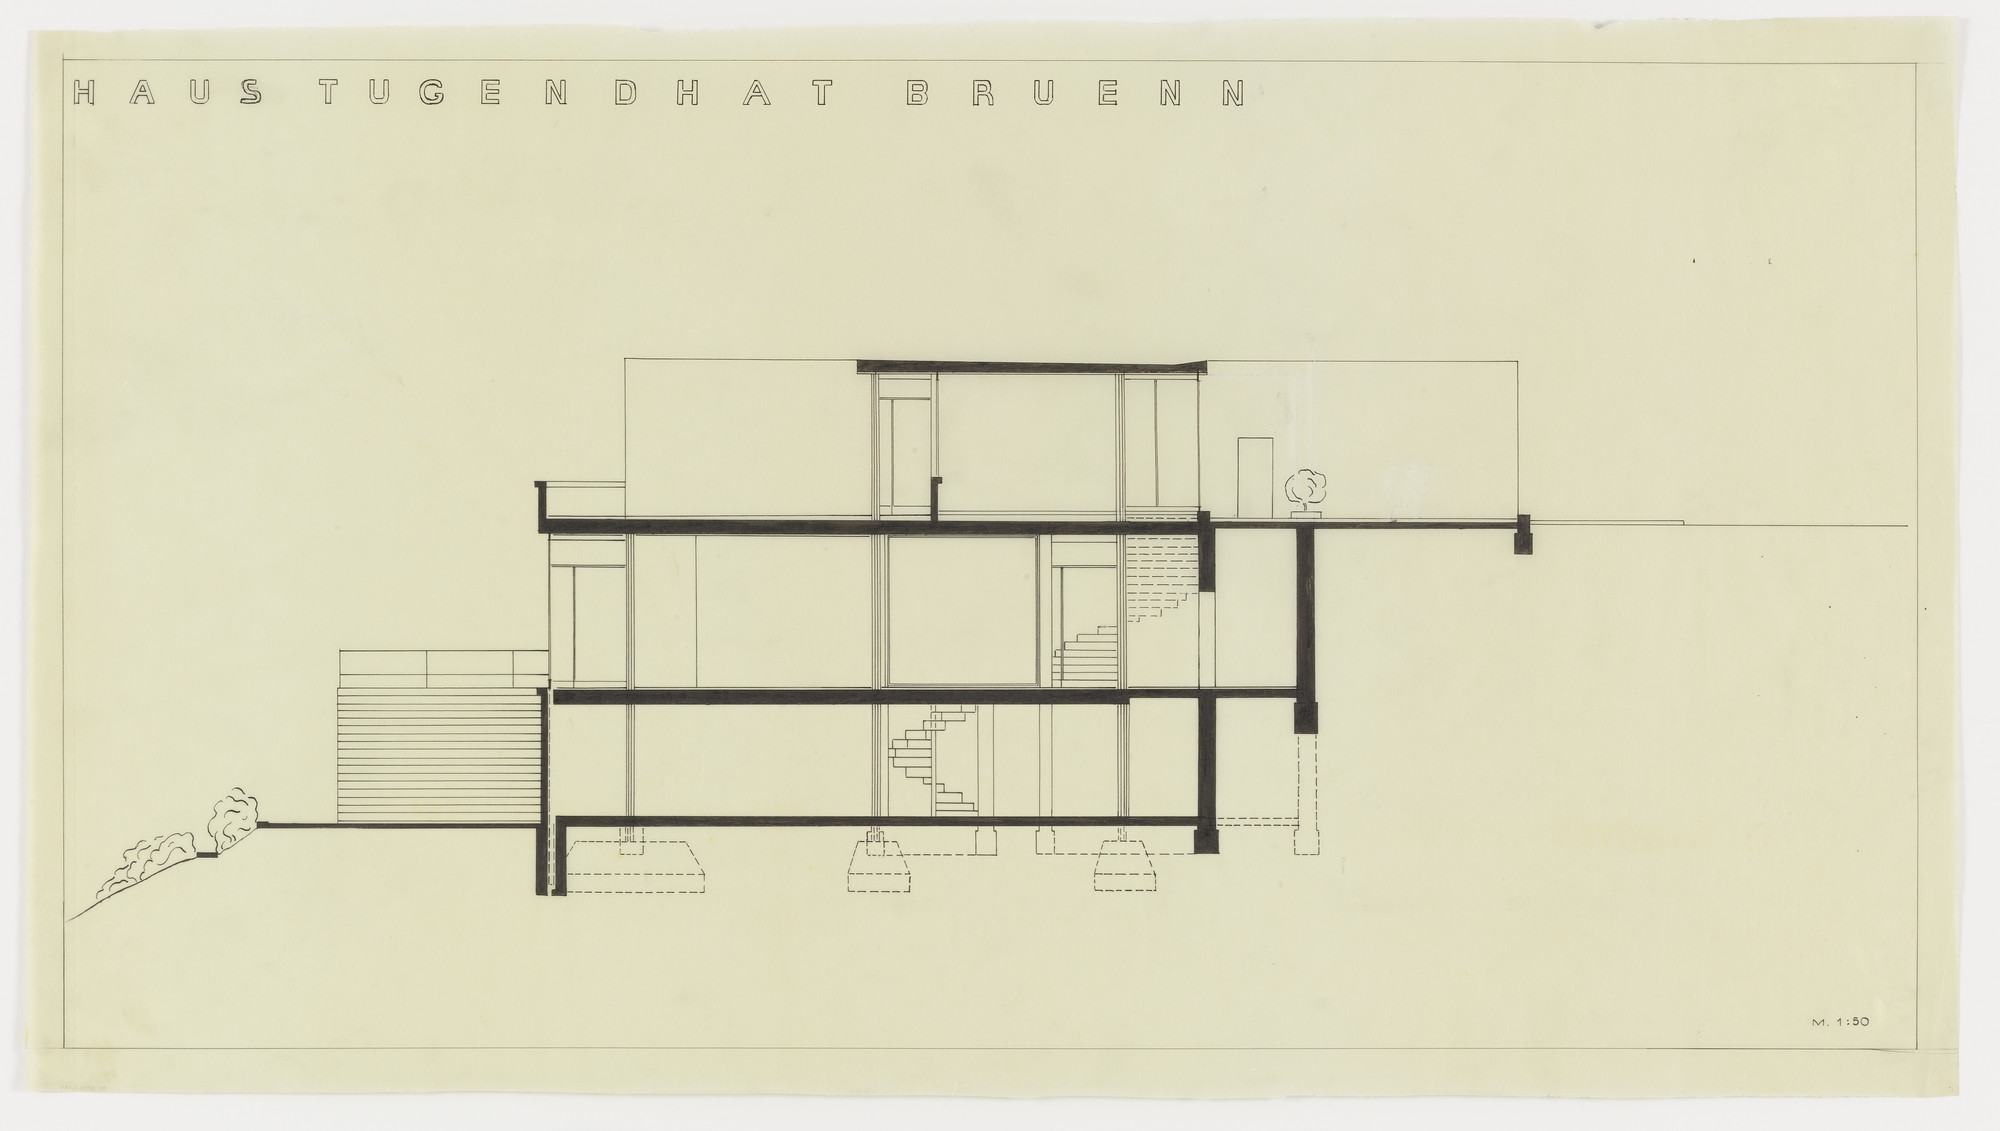 Ludwig Mies van der Rohe. Tugendhat House, Brno, Czech Republic (Section). 1928-1930